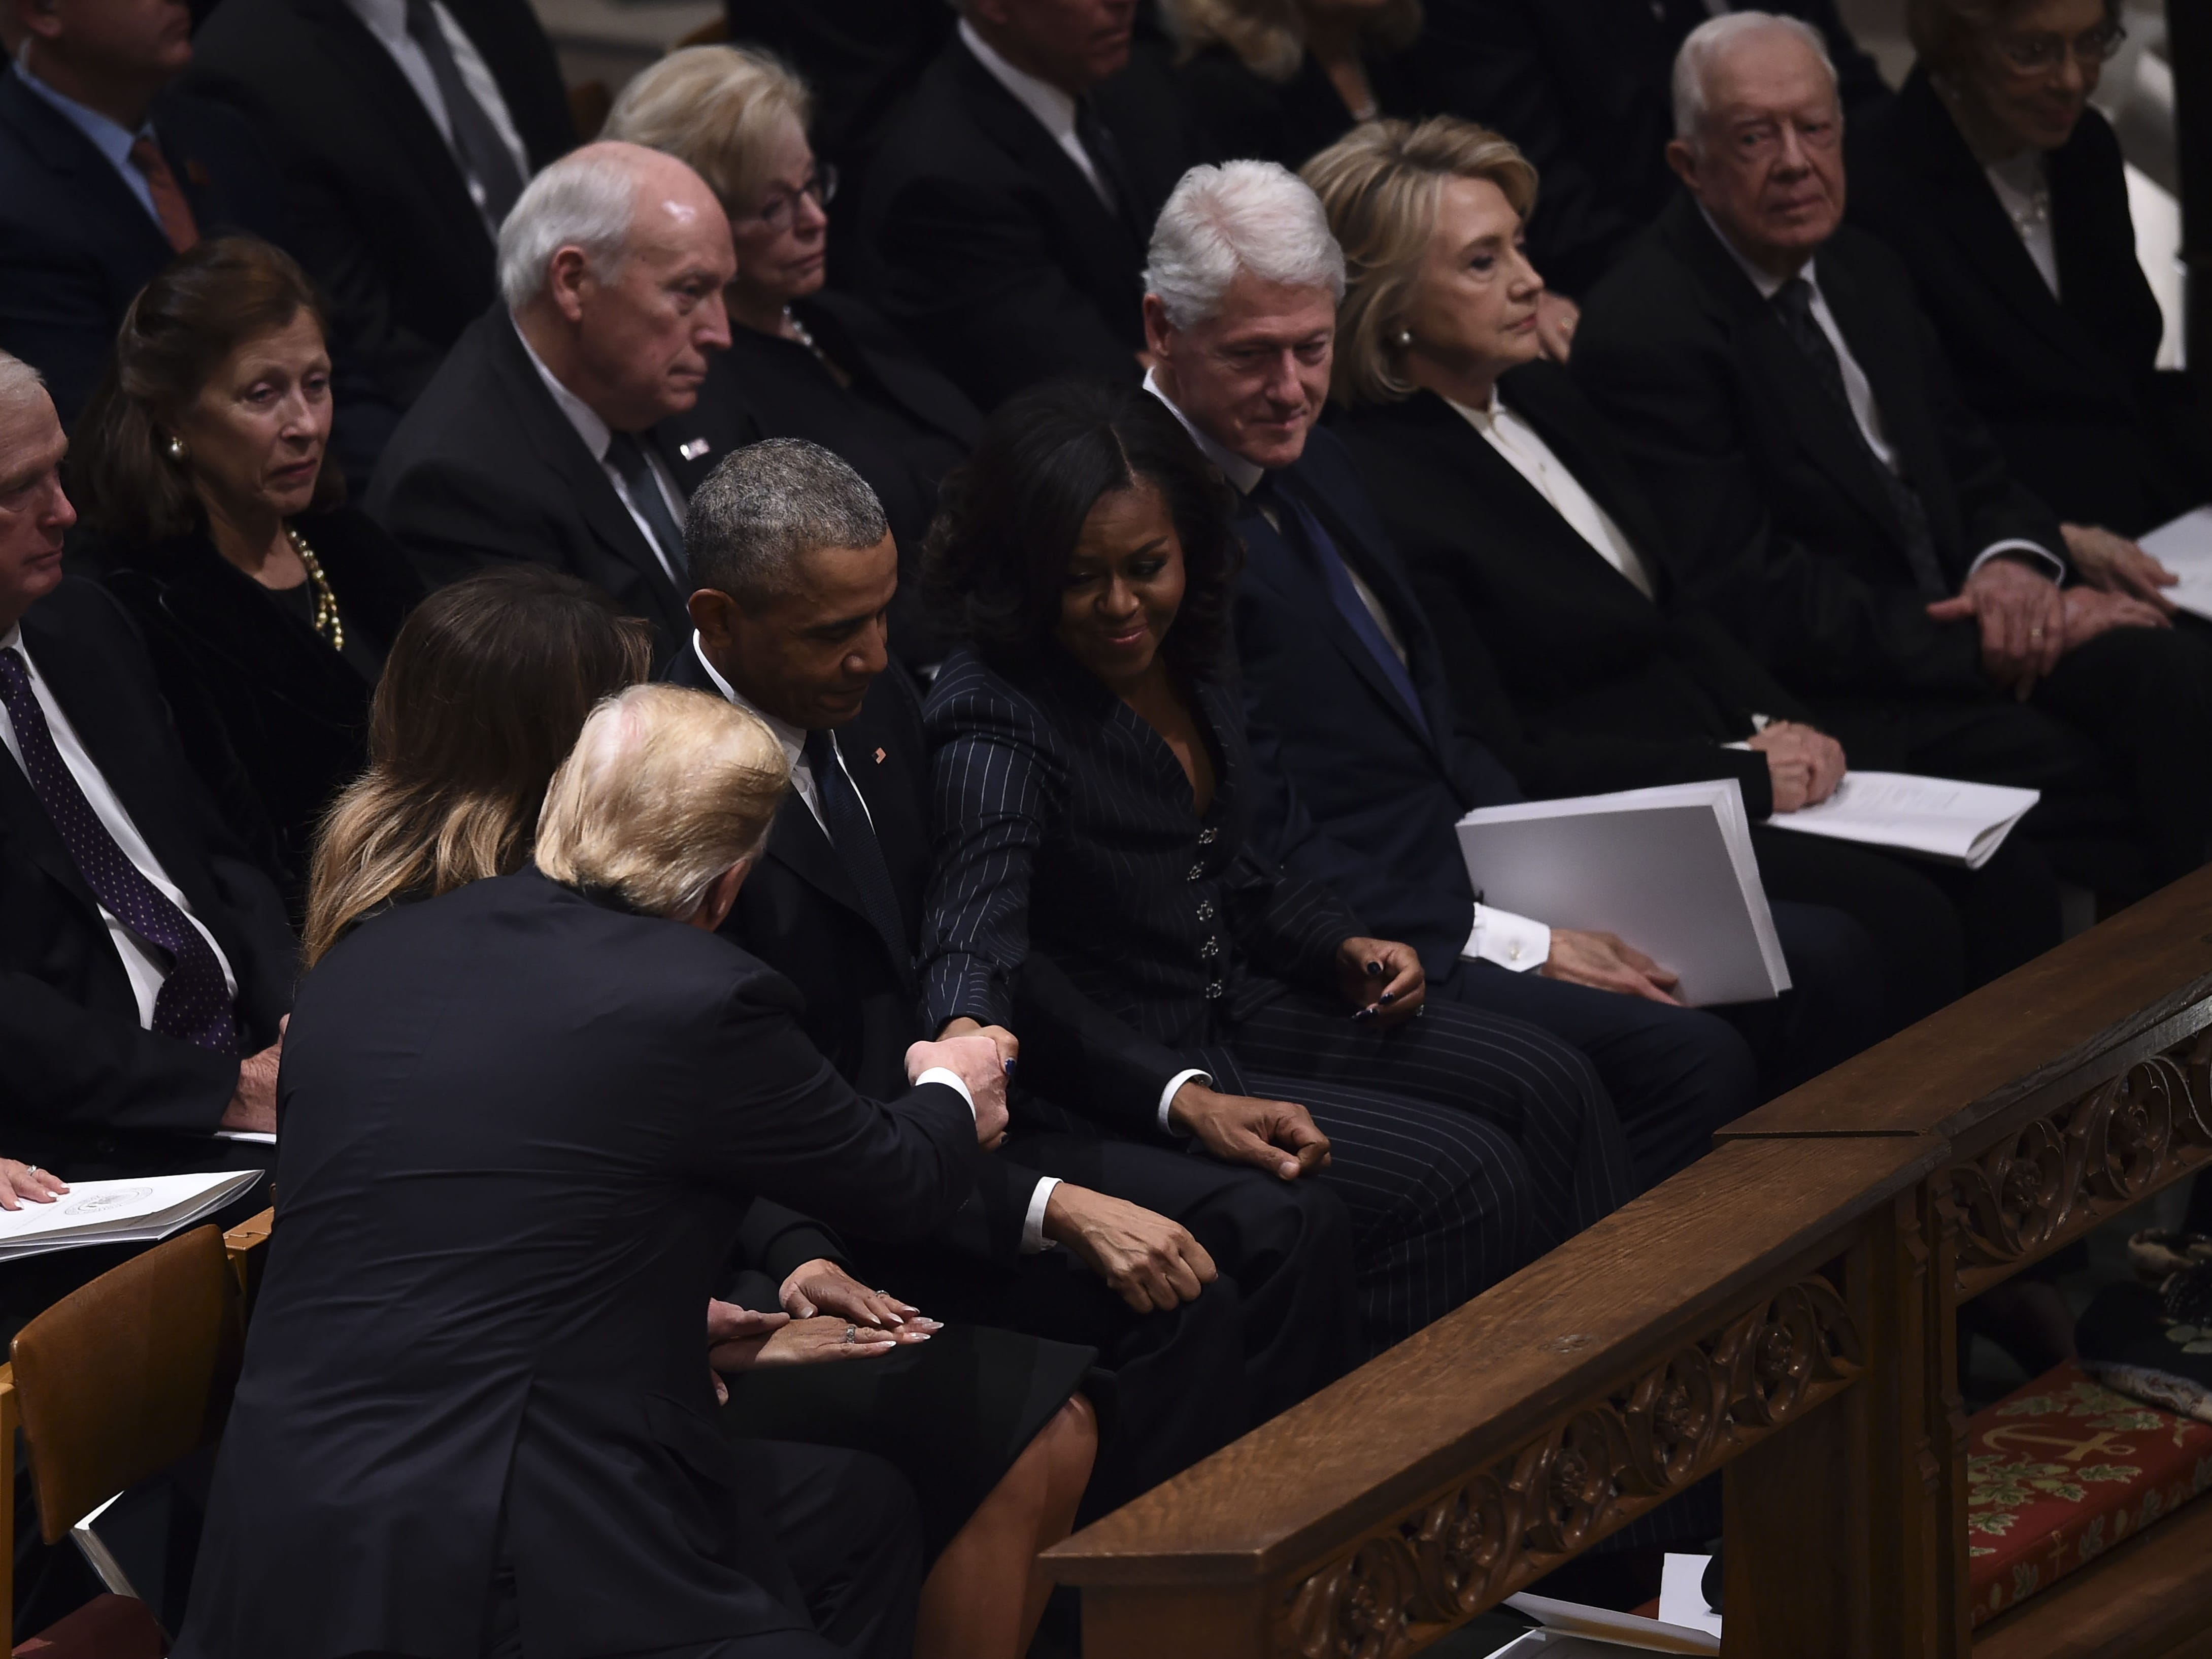 Silence, straight-ahead stares and candy mark rare full meeting of presidents' club at Bush funeral